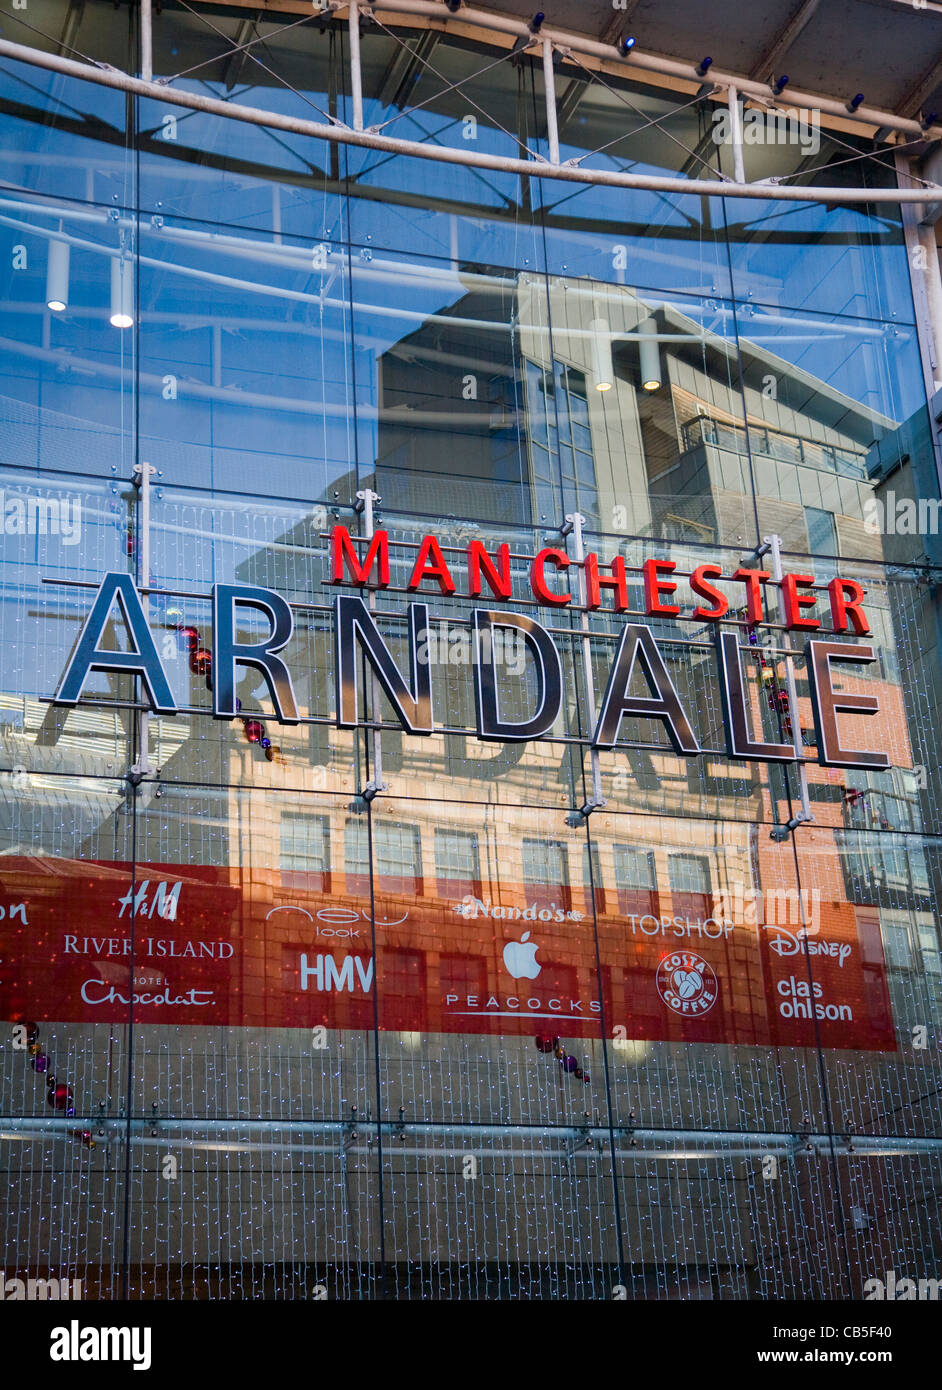 Piccadilly reflections in Arndale Glass walled Building Facade, Manchester, UK - Stock Image